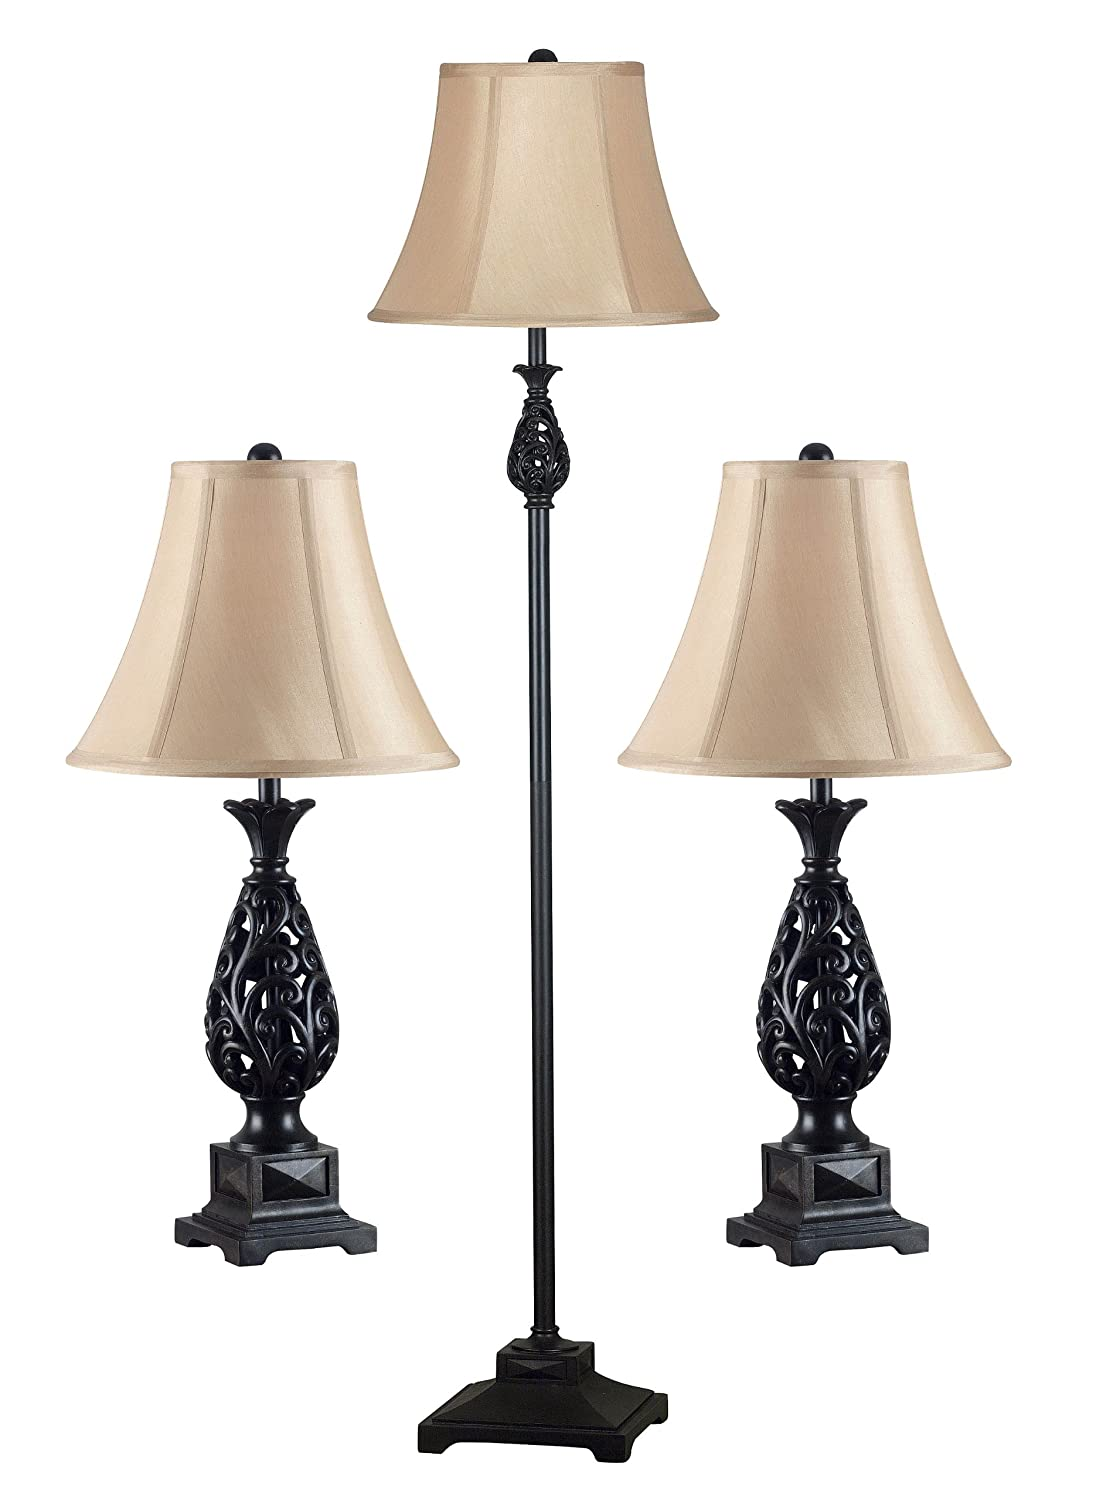 Kenroy Home GFBR Prescott Table and Floor Lamp 3 Pack